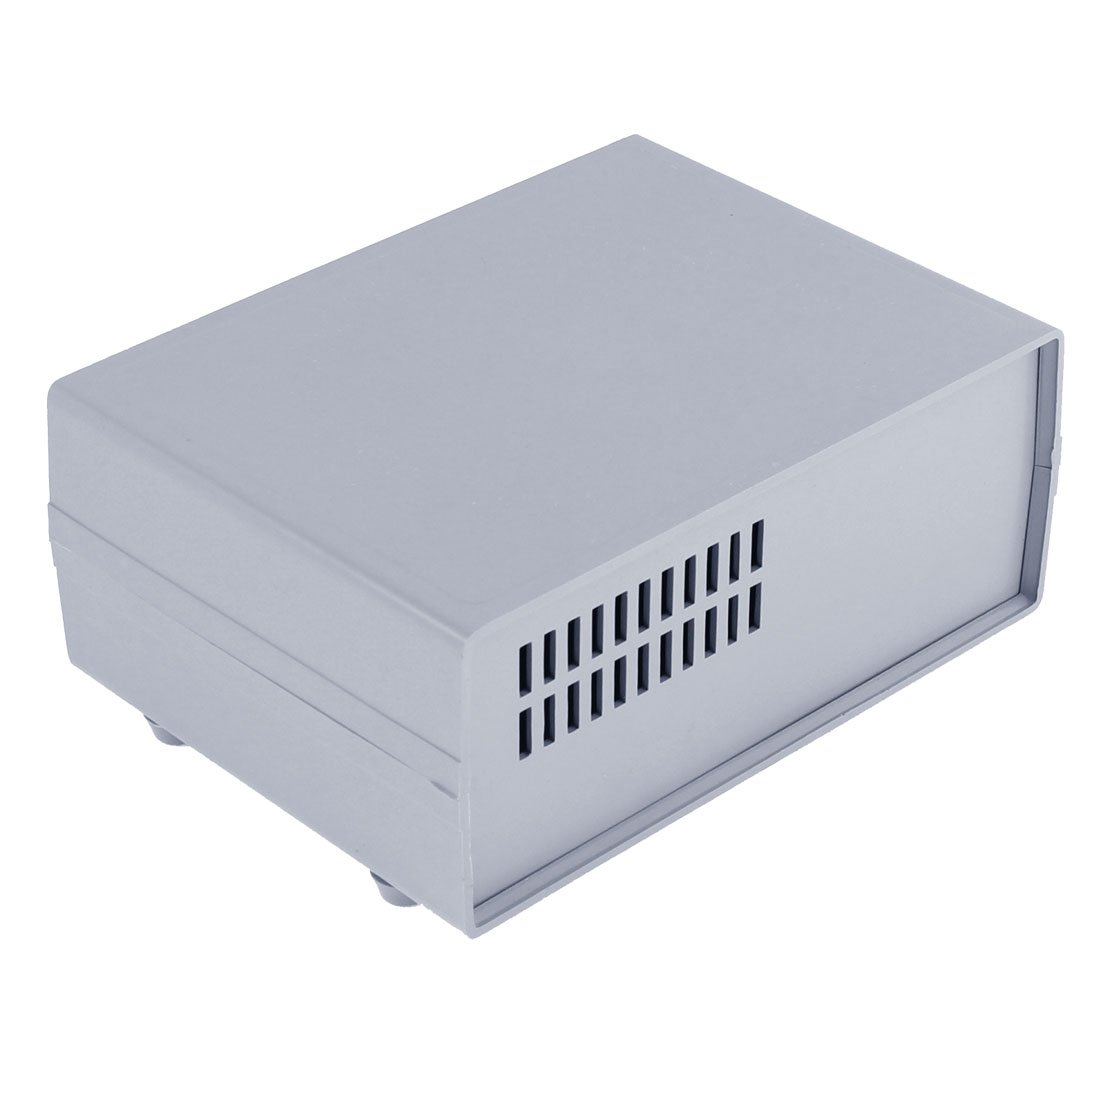 Uxcell a15102200ux0193 DIY Project Power Enclosure Electrical Junction Box 16.5 x 12 x 6.8cm